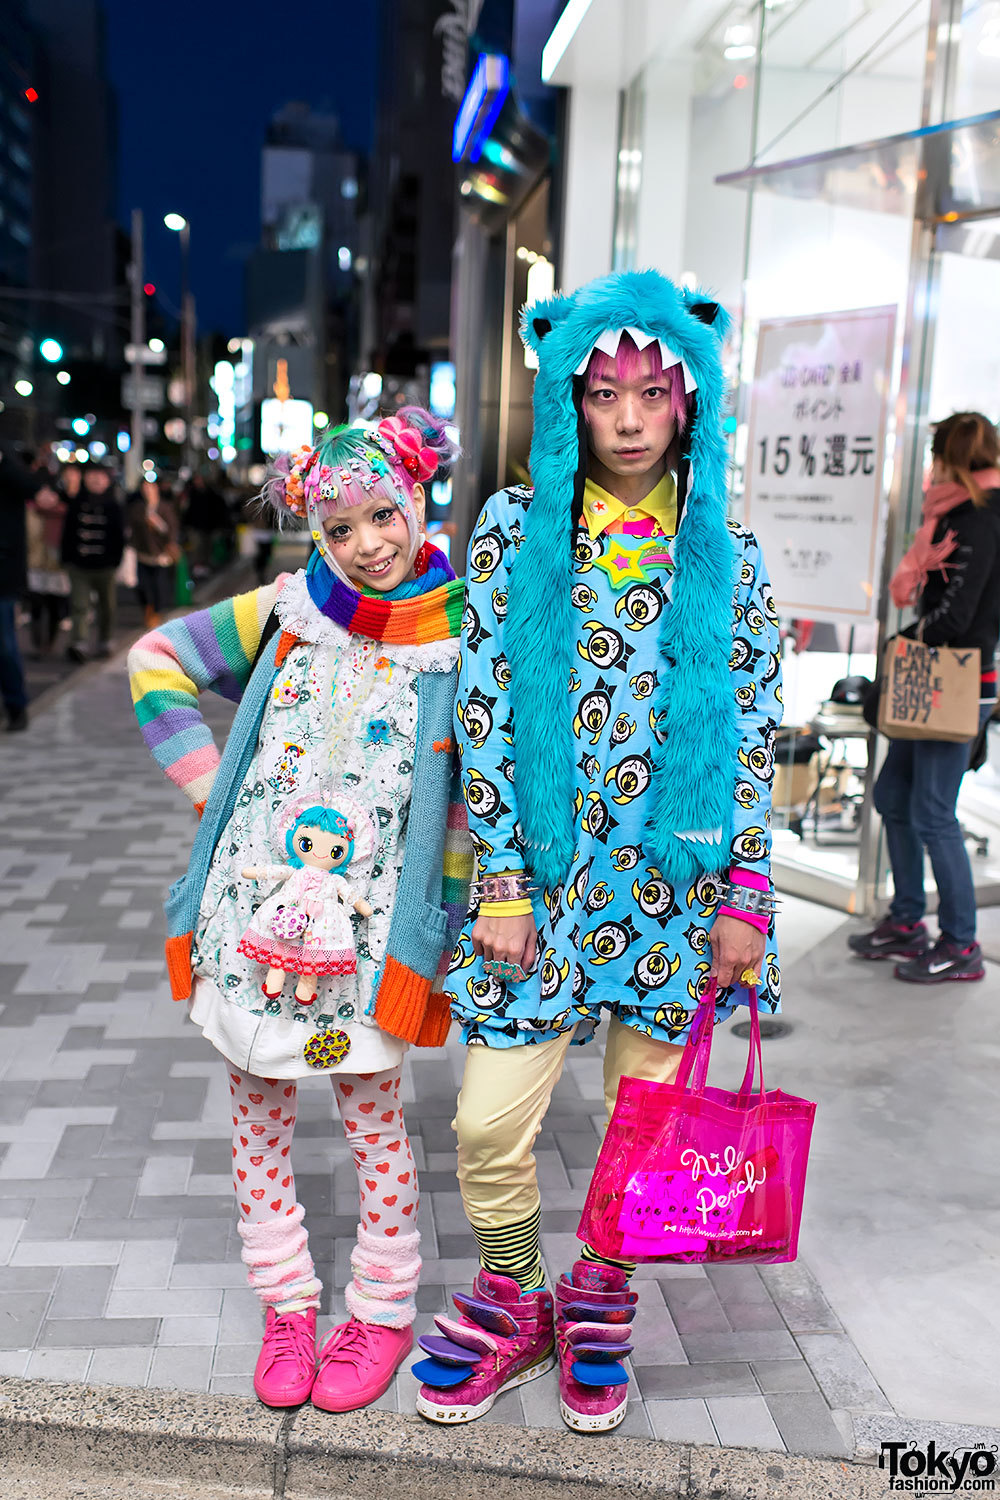 tokyo-fashion:  Kurebayashi & Junnyan lighting up the Harajuku night with their super colorful fashion & hair!